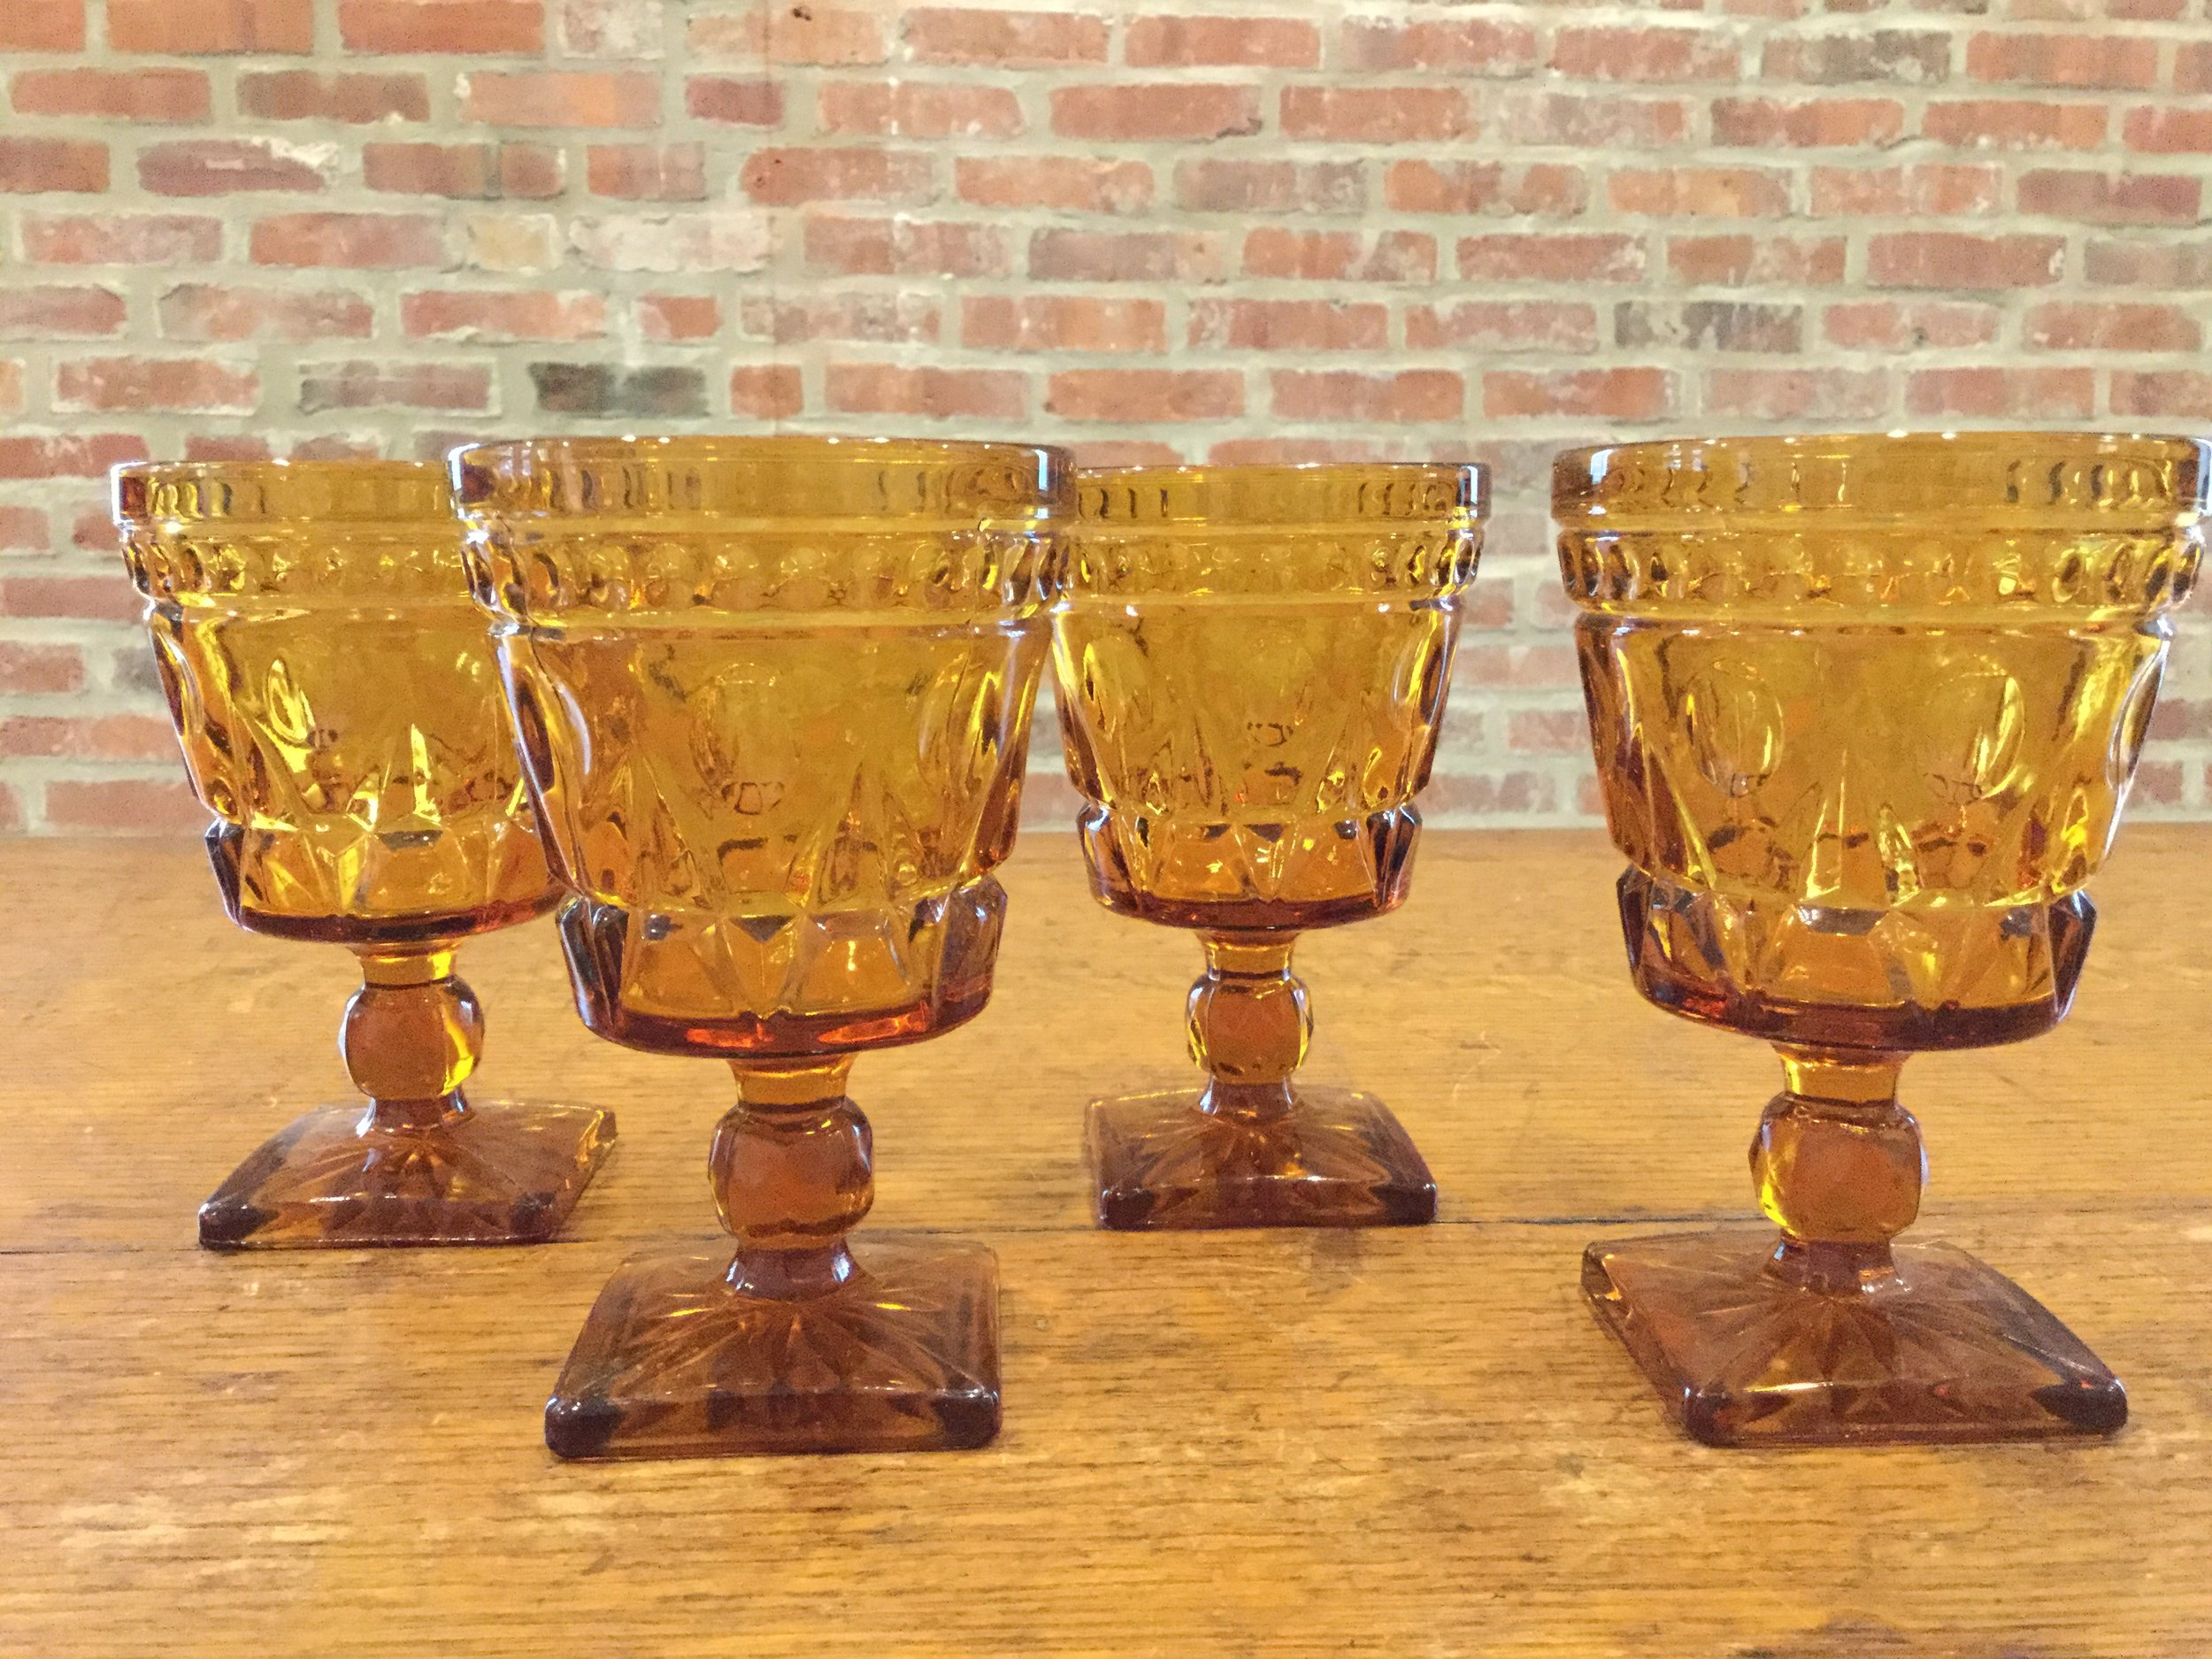 Assorted Colored Water Goblets - $2.00 each